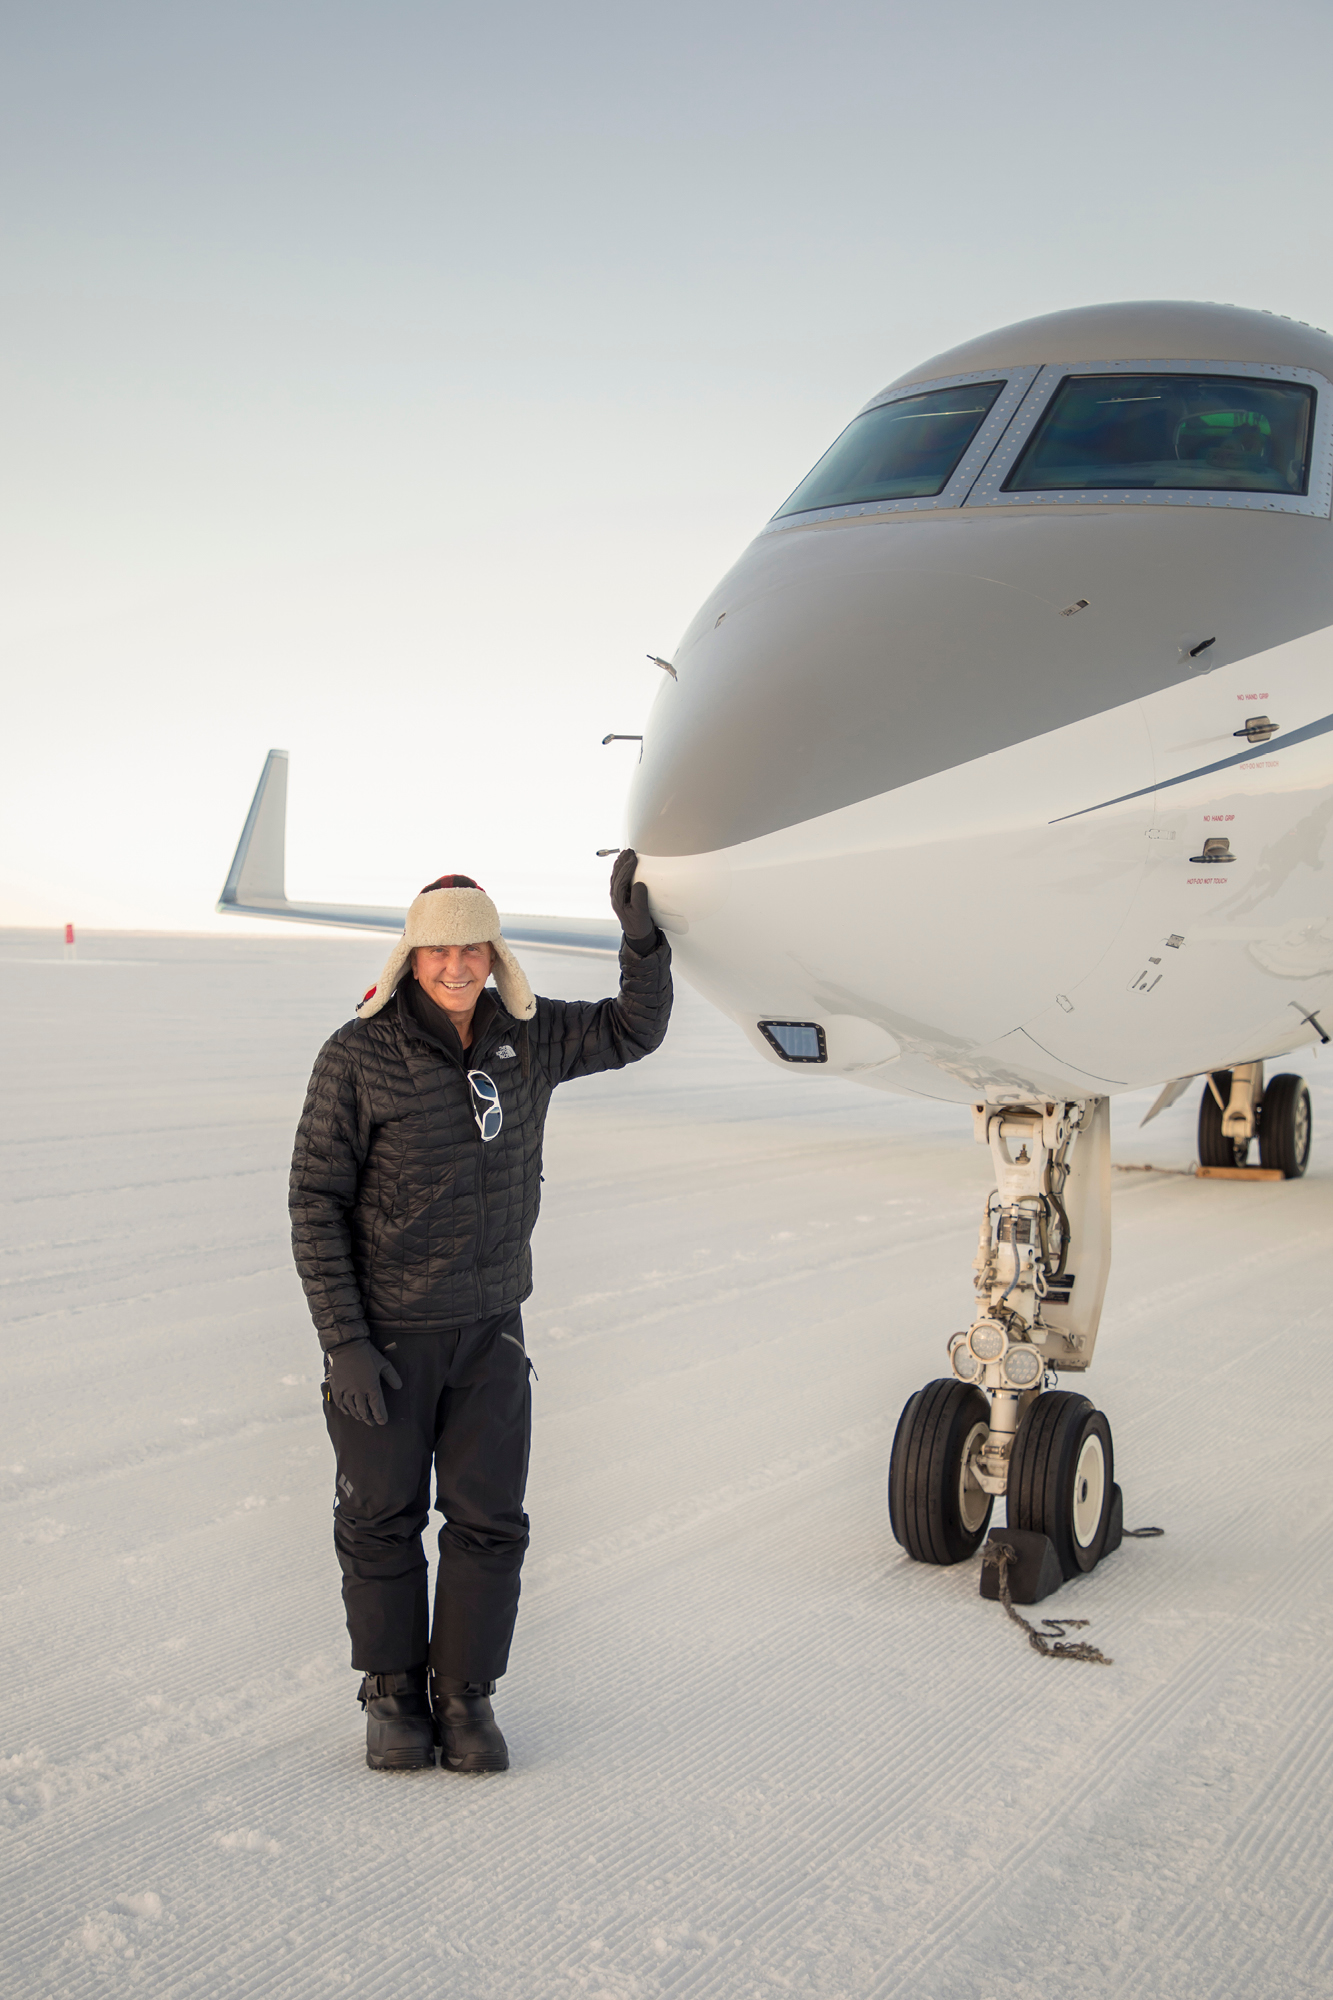 Geoffrey Kent with the aircraft that transported his expedition group to Antartica